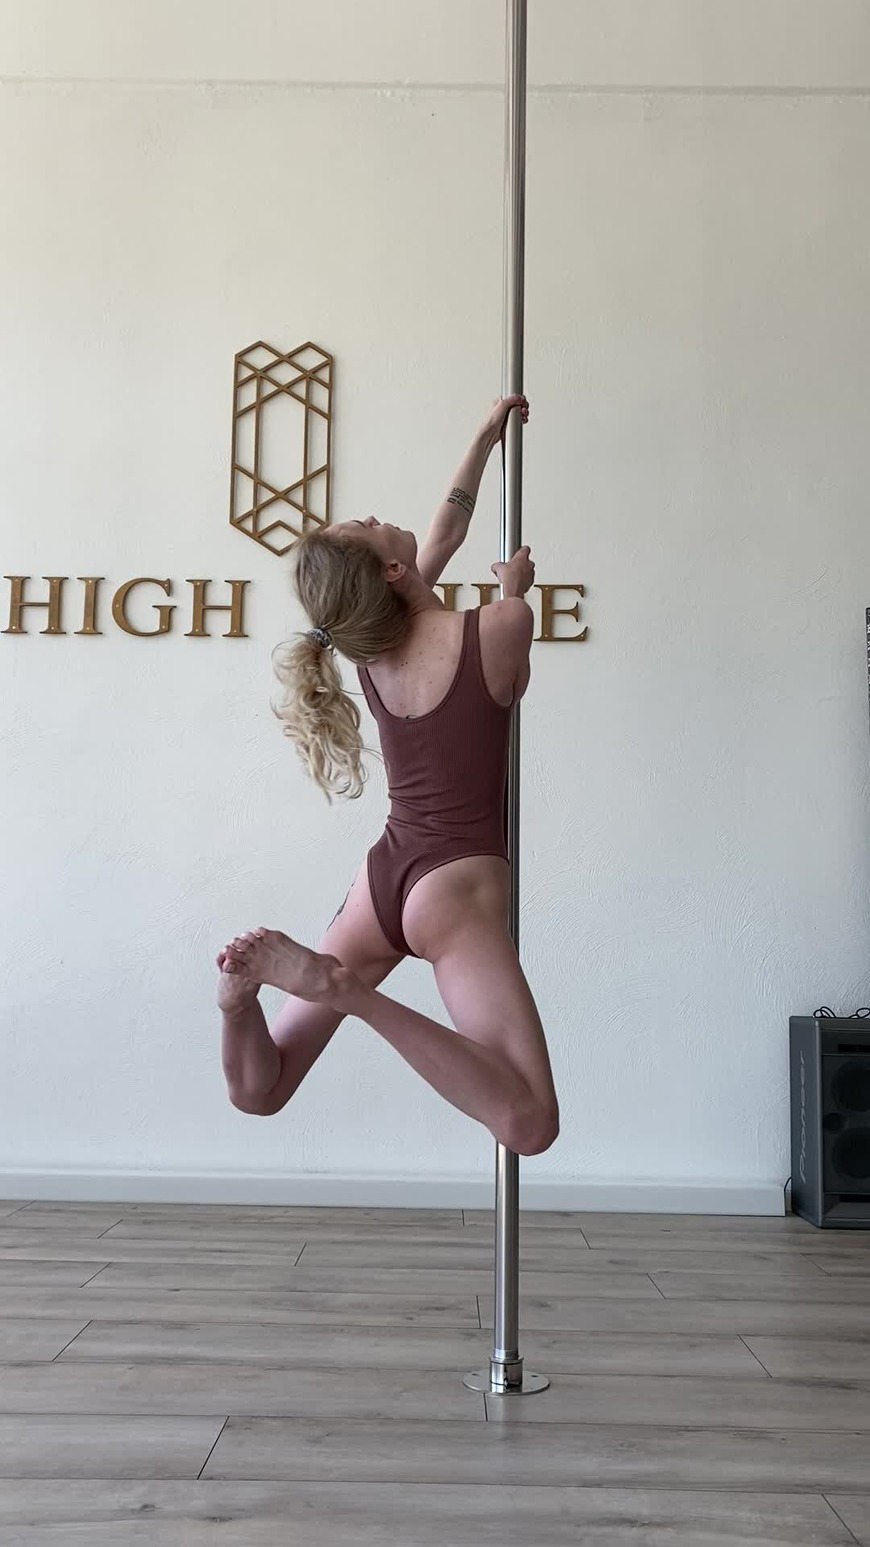 No matter how slow you are learning pole. You are still climbing higher than everyone on the couch 💋 - video cover